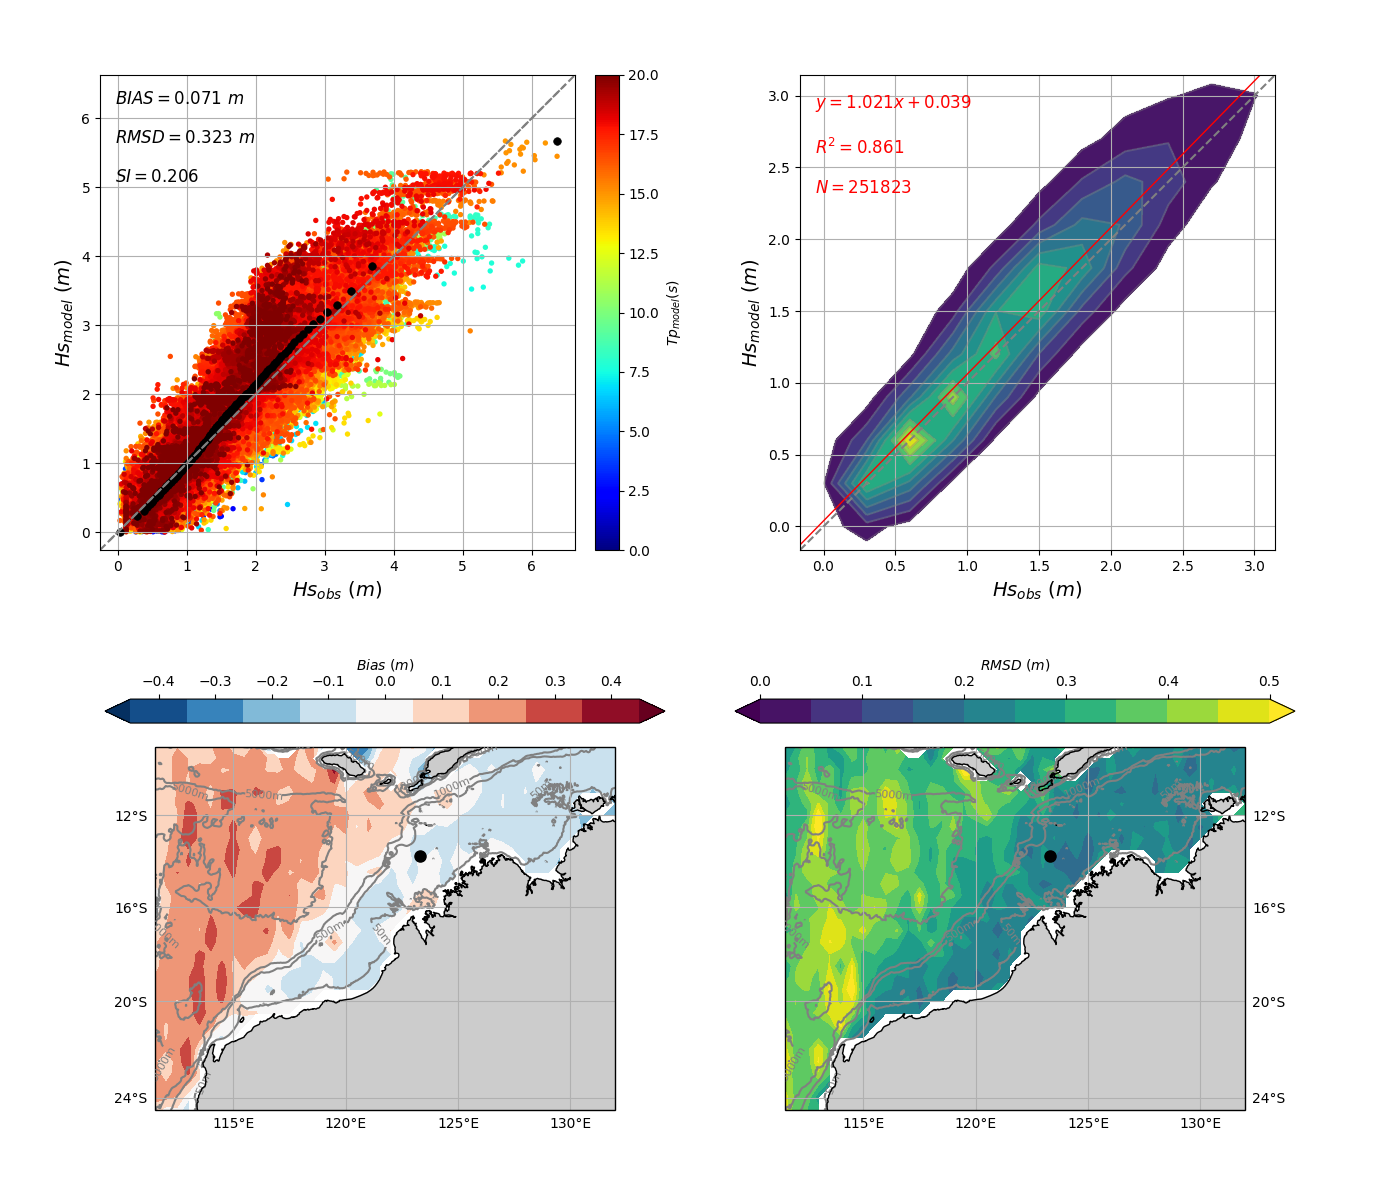 Figure 4. Validation against satellite altimeters of MetOcean Solutions' 5km Australia Northwest Shelf SWAN domain using the new ST6 physics source terms. Overall scatter diagram and scatter density are shown at the top. Model bias and RMSD are presented at the bottom.